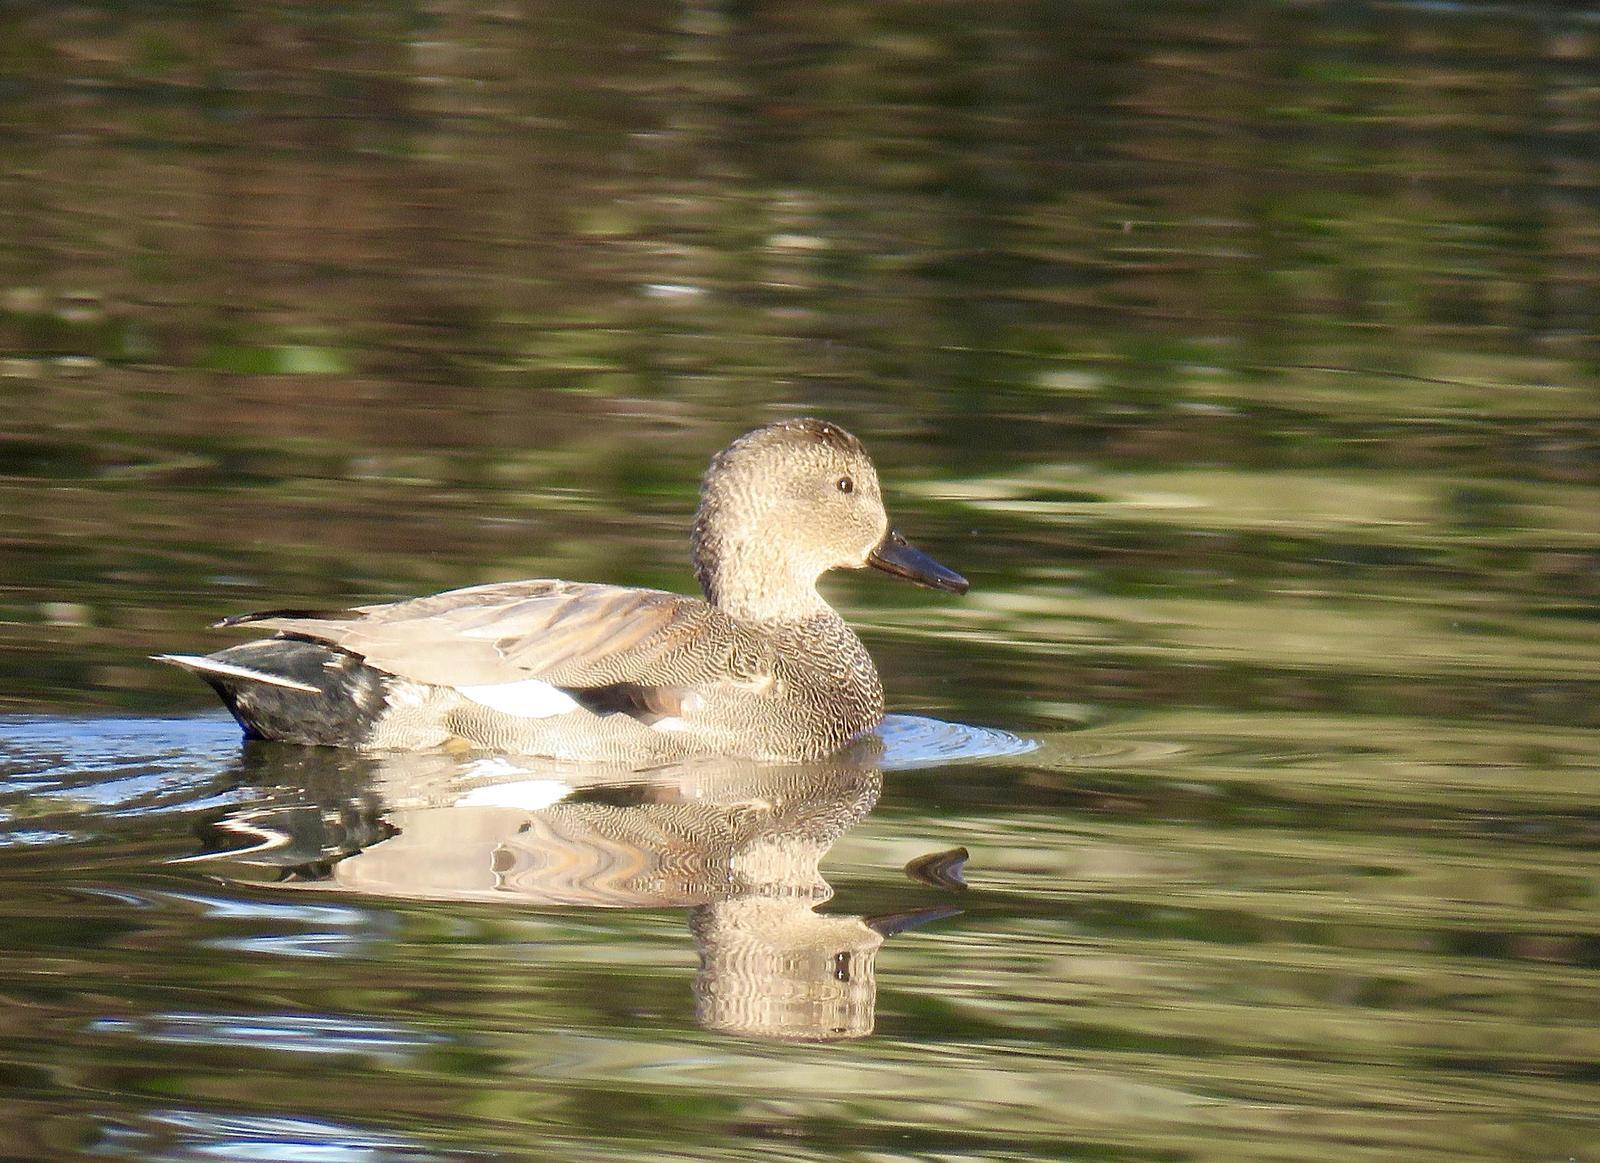 Gadwall Photo by Ted Goshulak